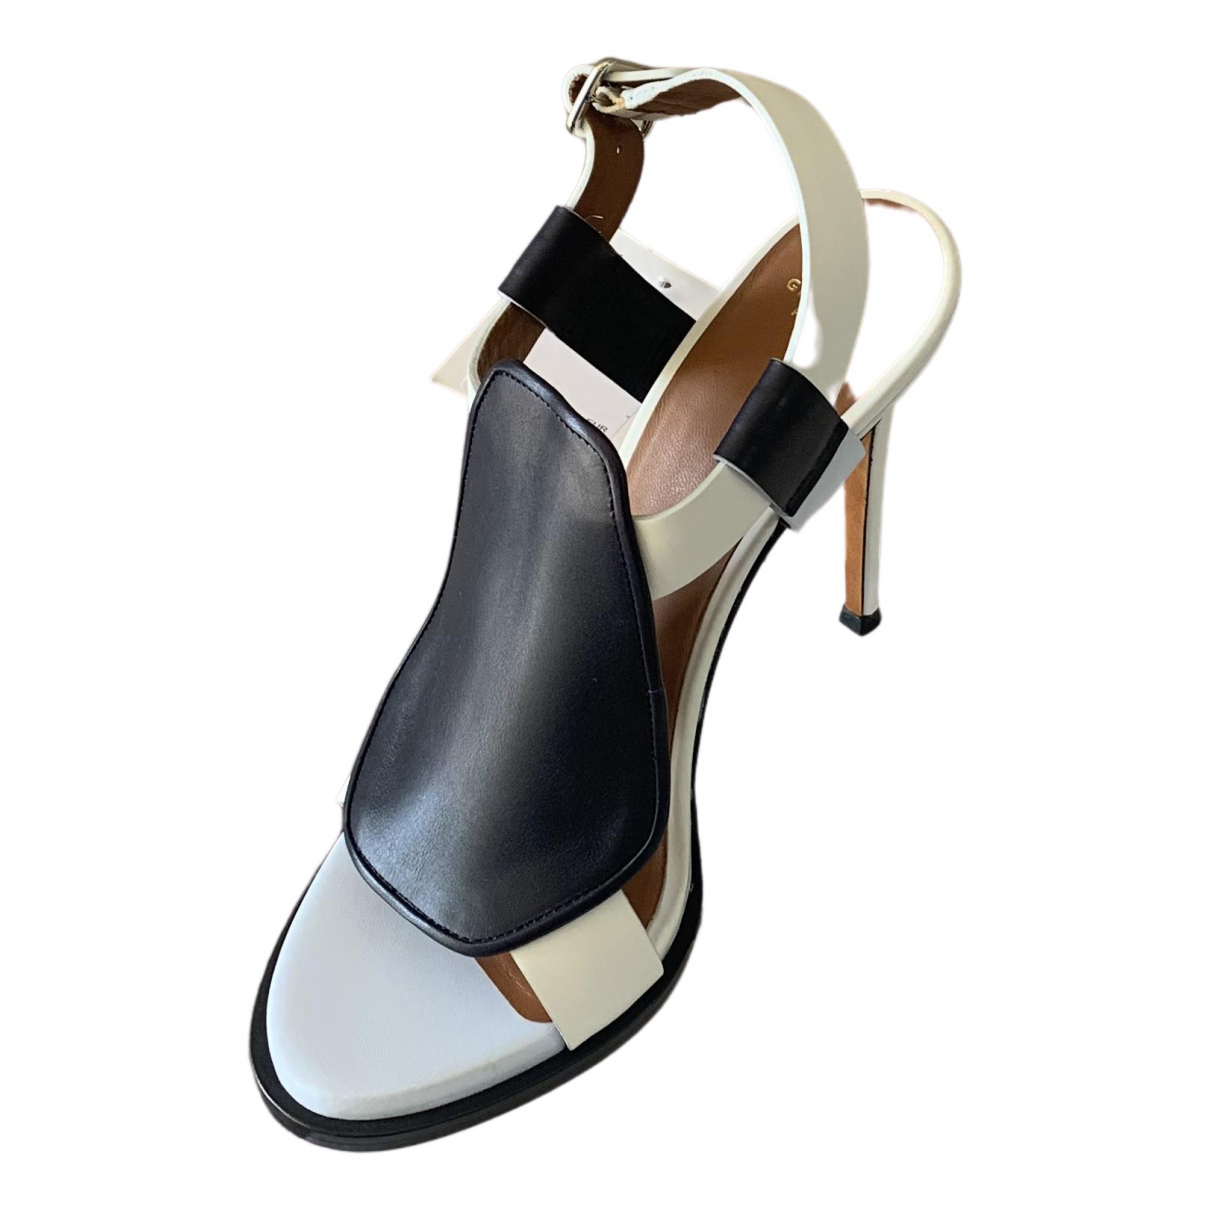 Givenchy \N Pumps in  Weiss Leder